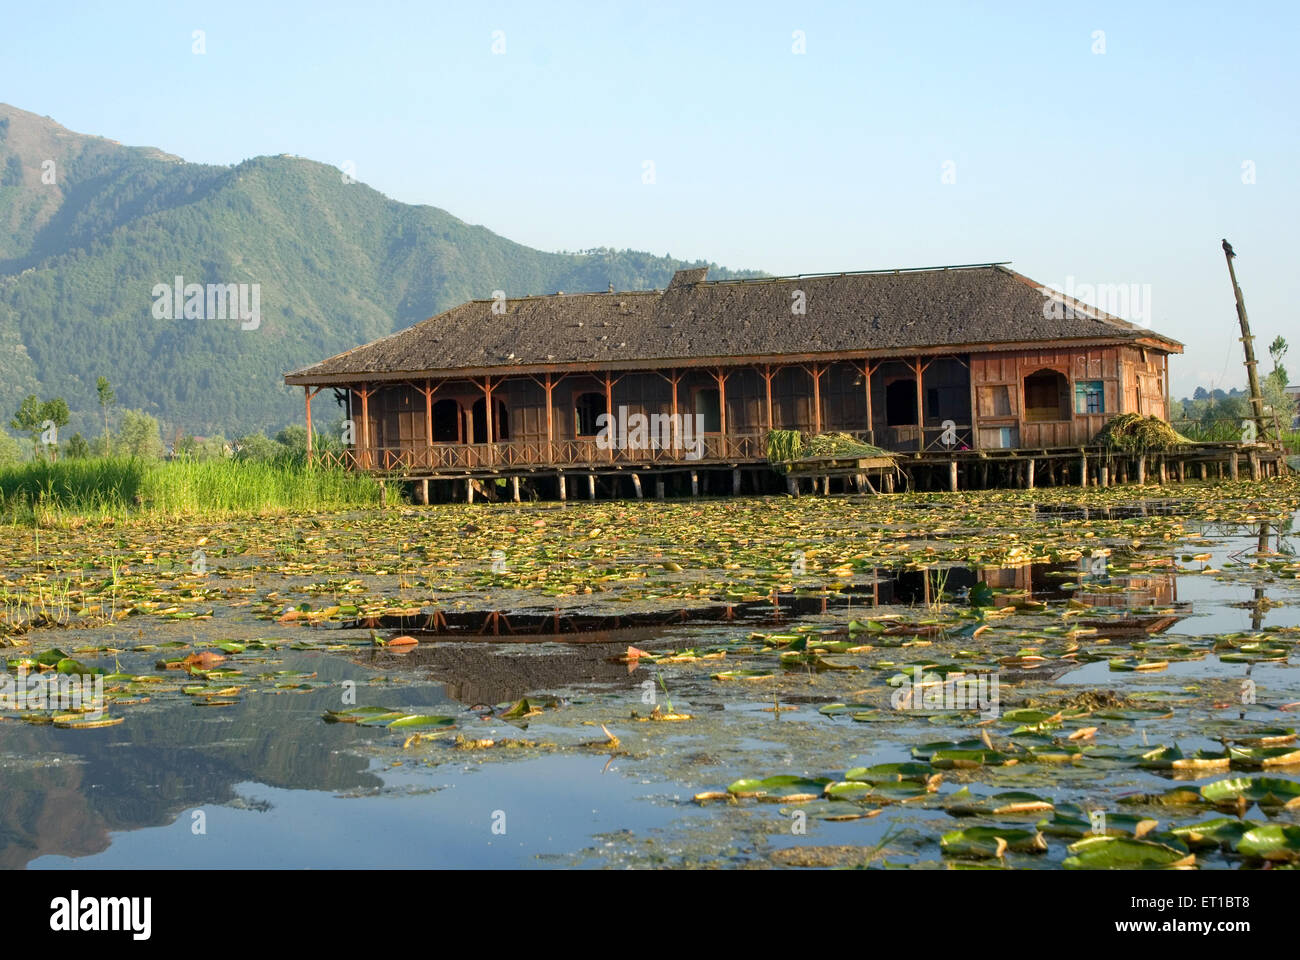 Abandoned house boat in dal lake Srinagar Jammu and Kashmir India Asia - Stock Image